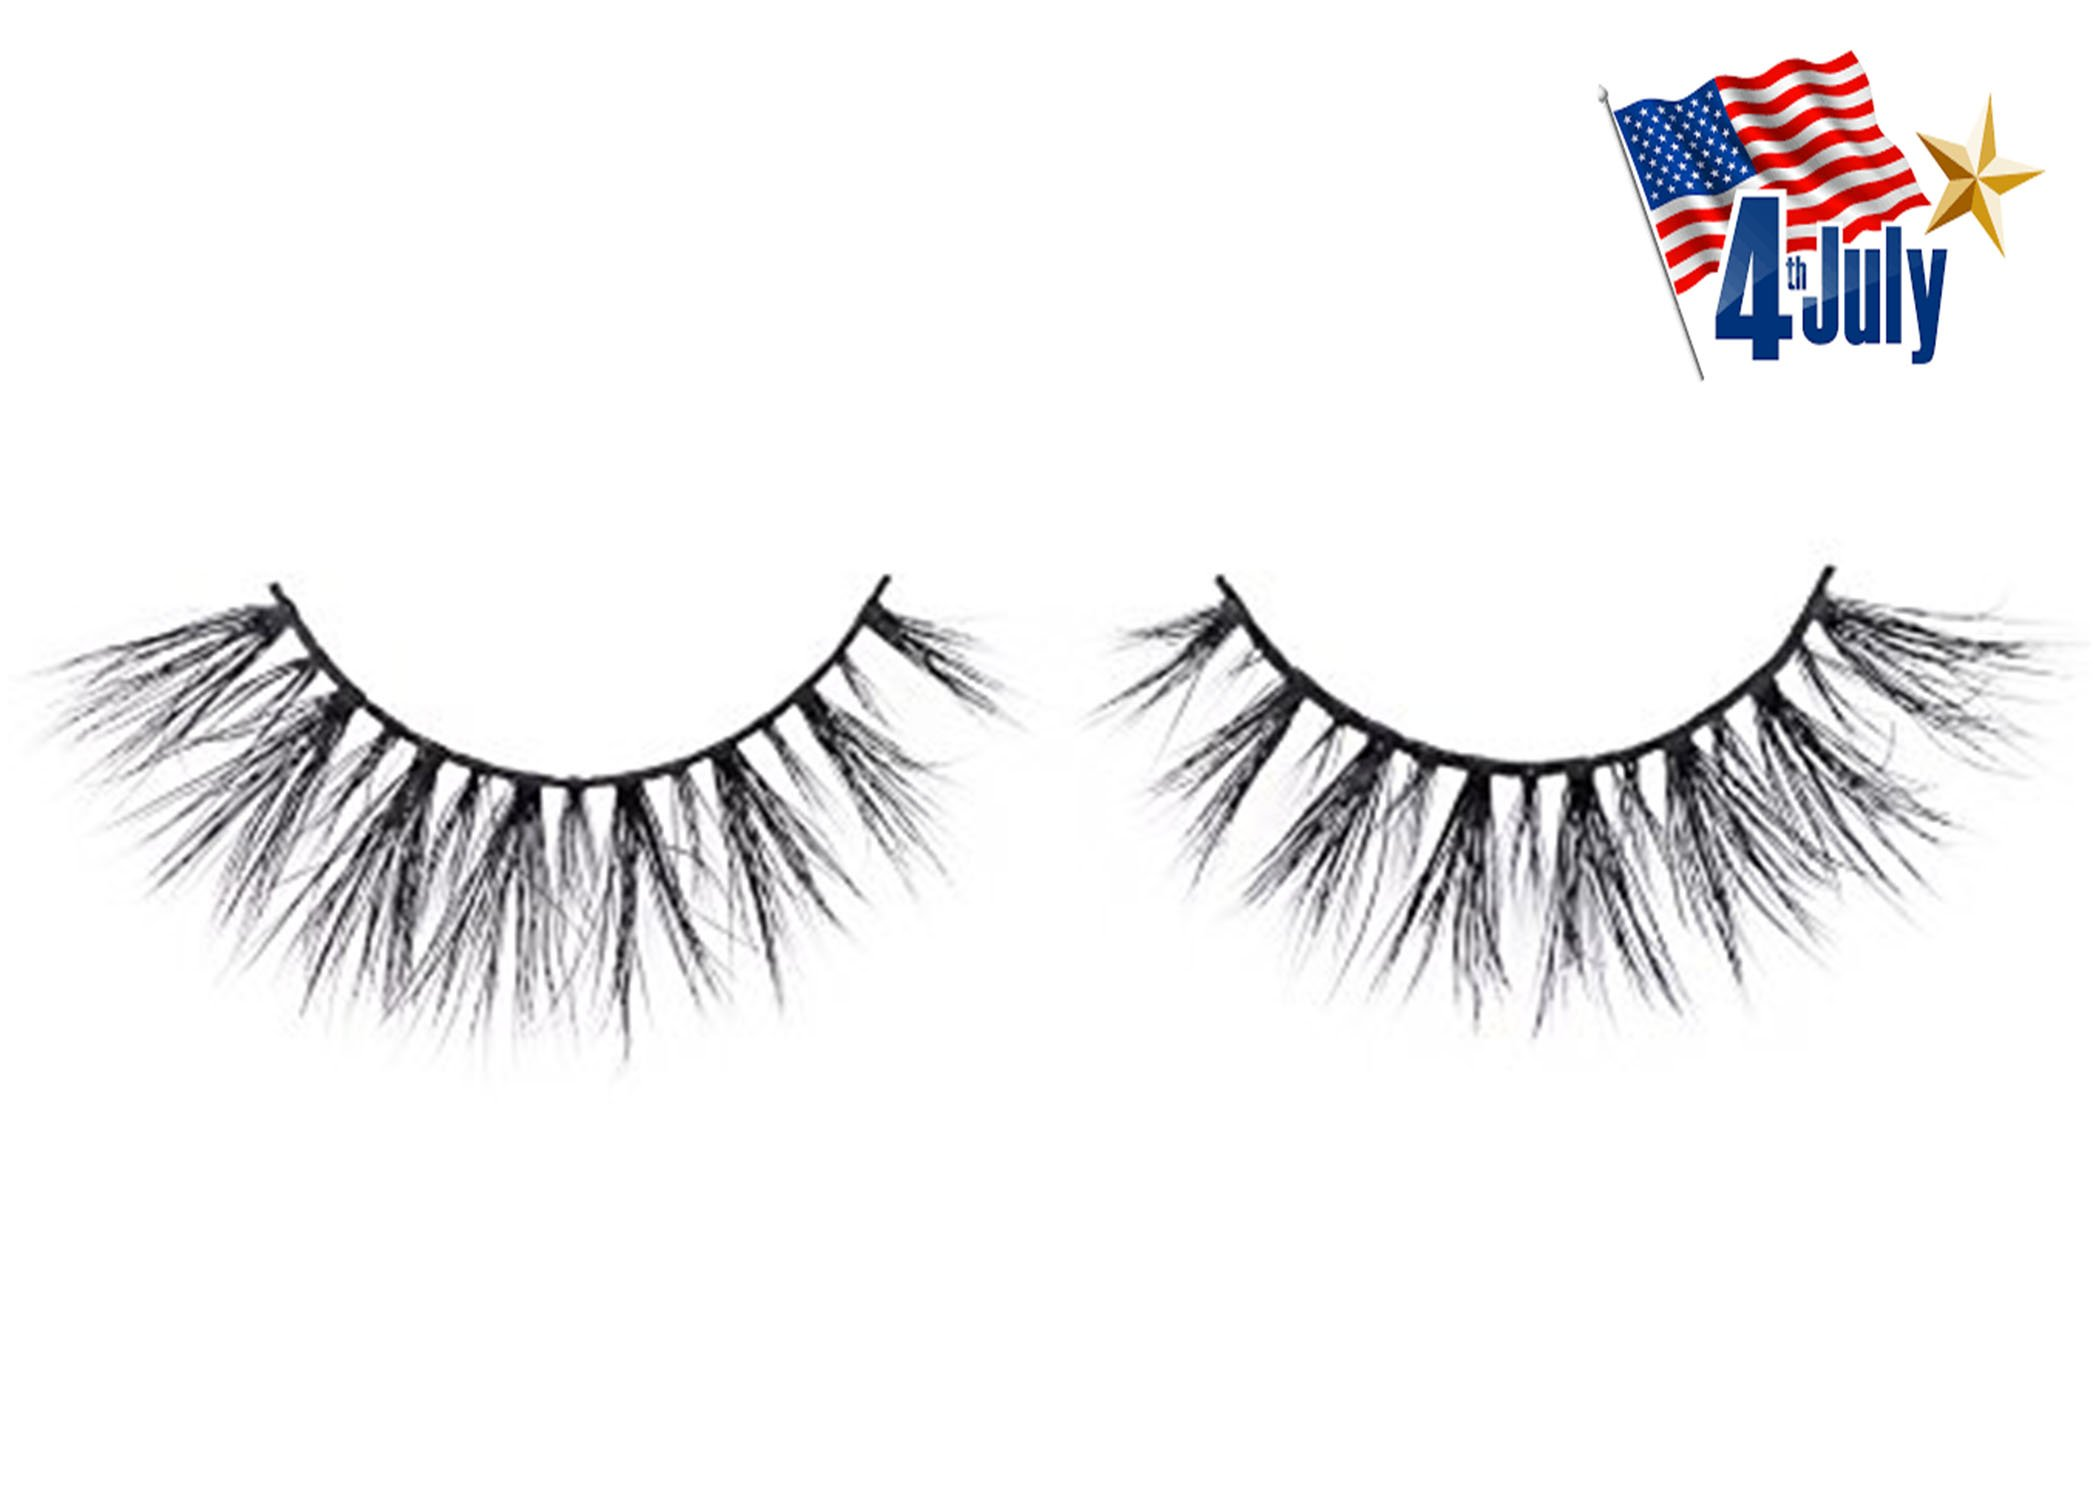 05cba3d23d2 Amazon.com : LUCINE LASHES 3D MINK COLLECTION - False Mink Eyelashes -  Natural False Eyelashes for Thickness, Length and Volume - Reusable,  Non-Irritating ...